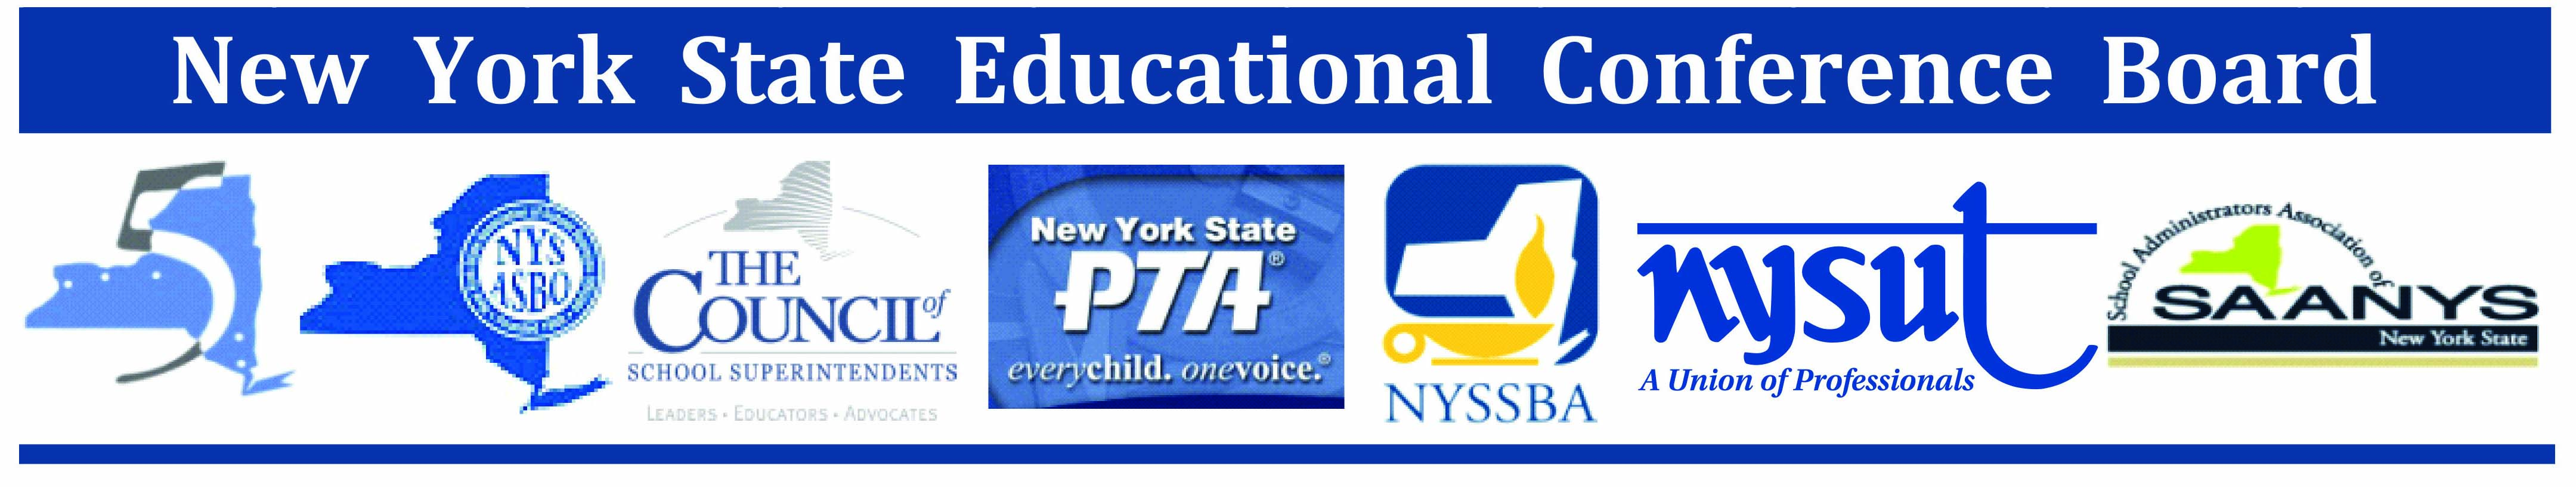 New York State Educational Conference Board